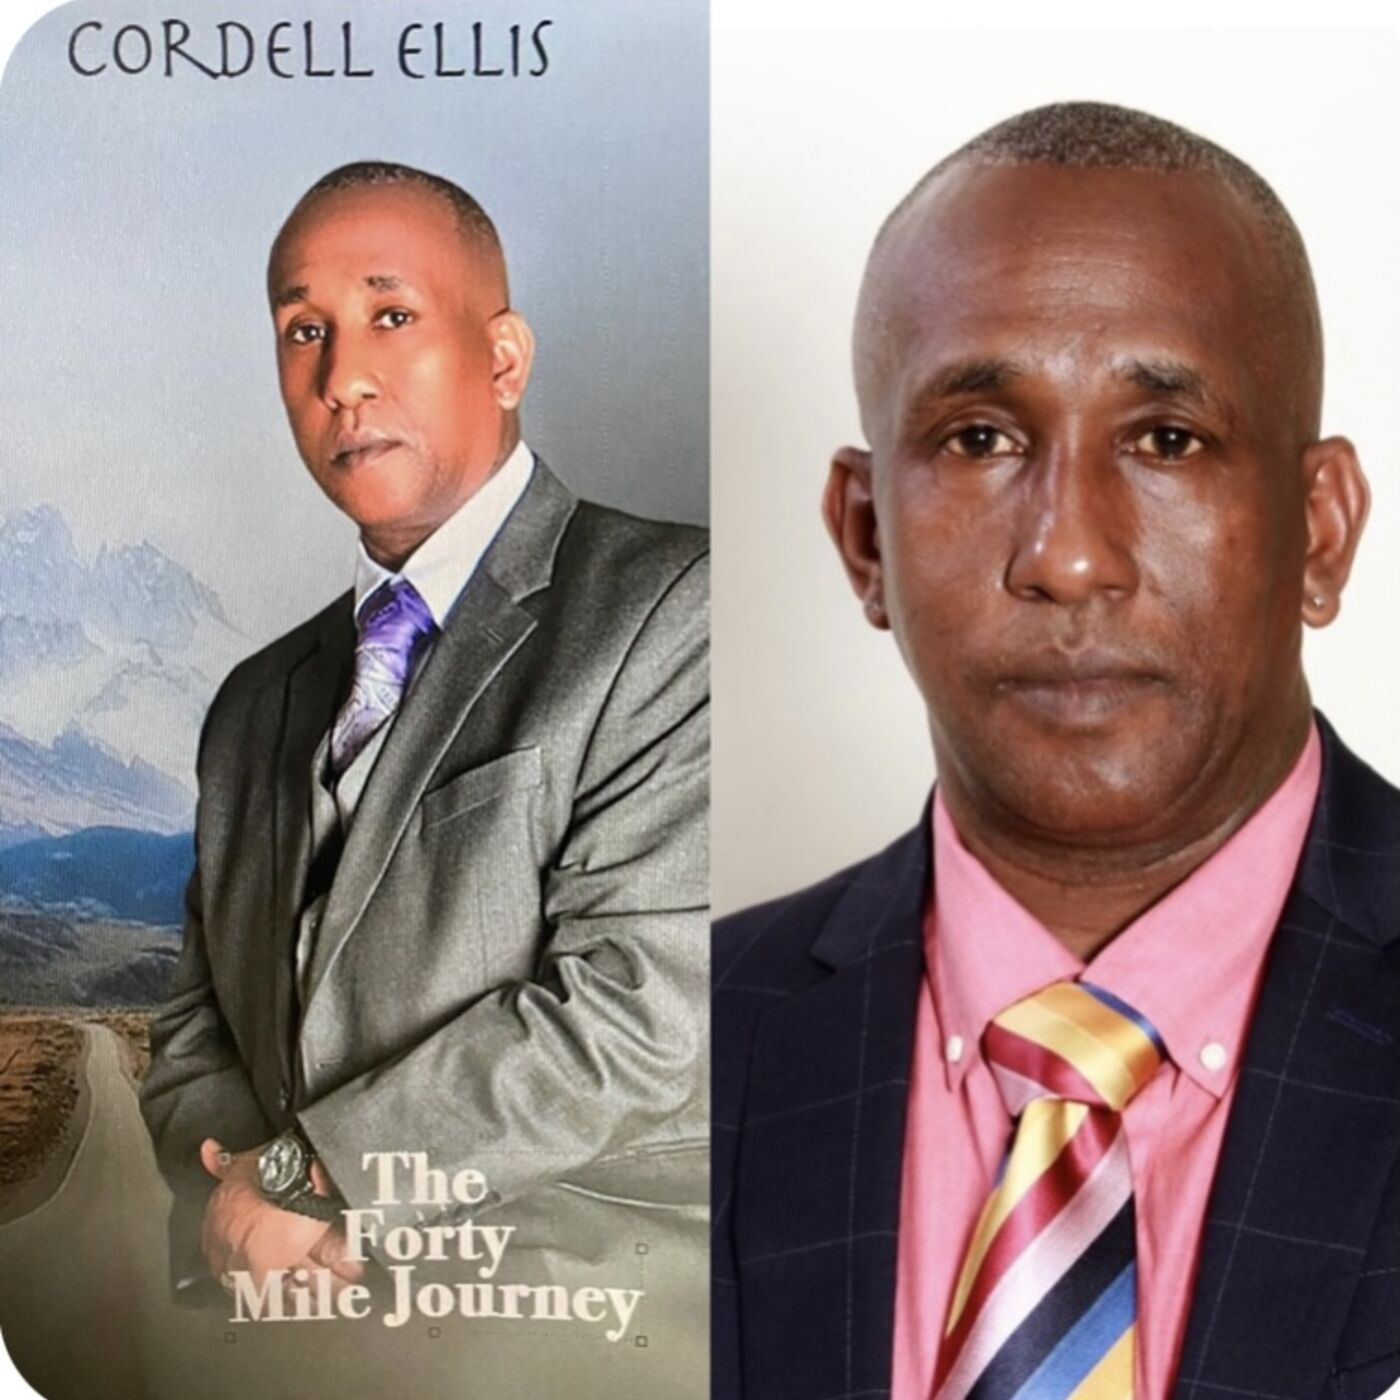 Cordell Ellis, Author, Talks About The Future Of His Book That Will Help Todays Troubled Youth